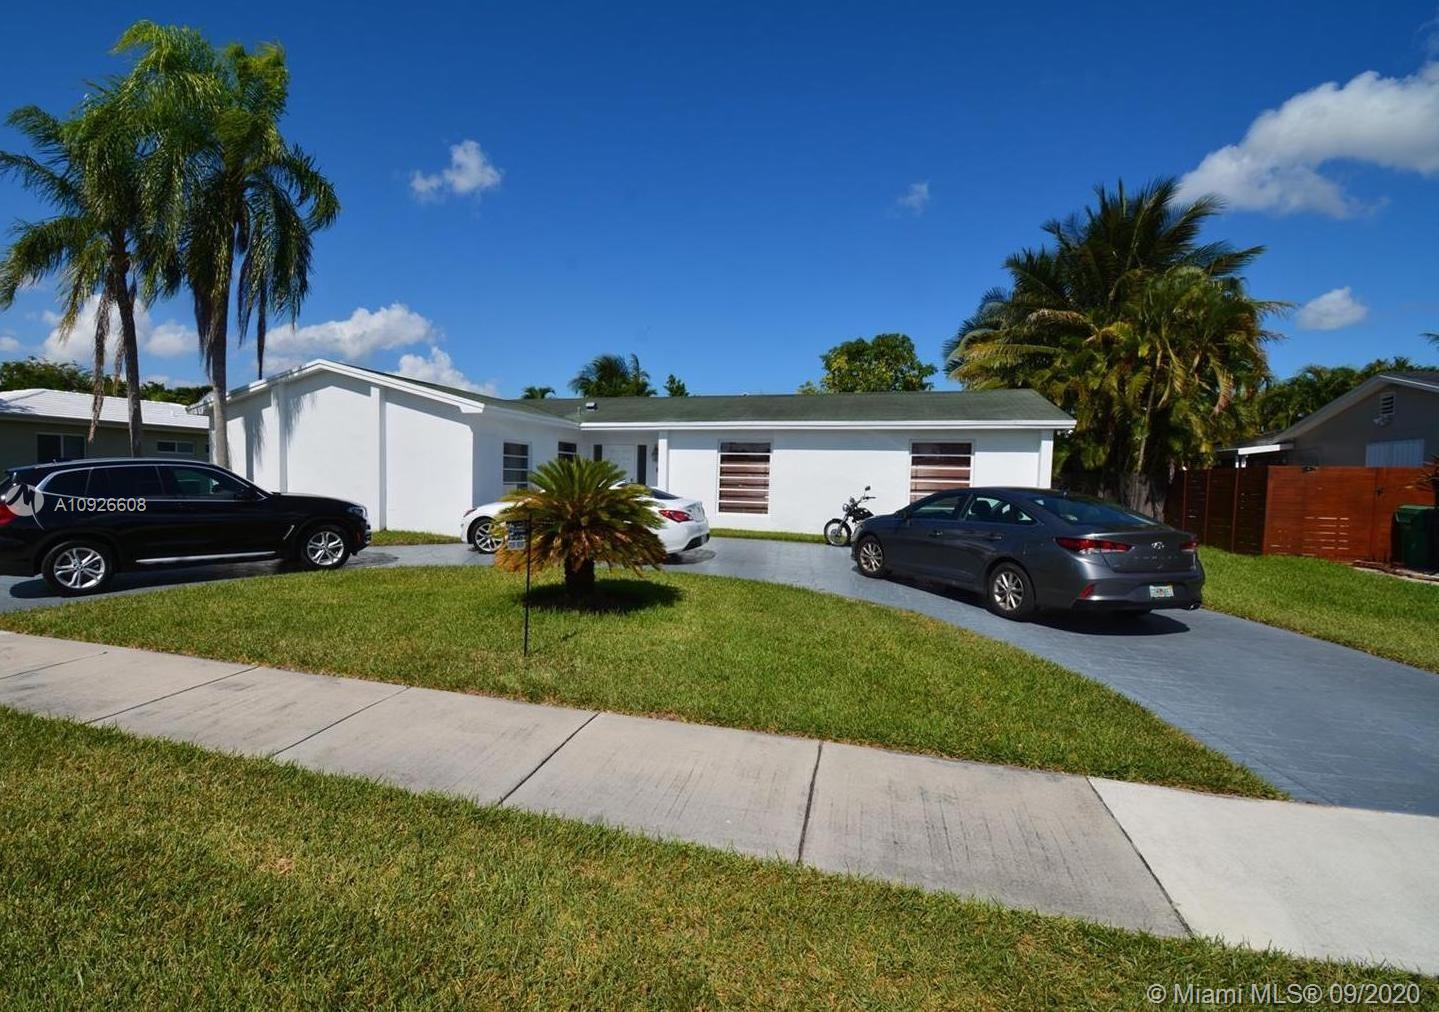 BEAUTIFUL 4 BEDROOM 2 BATH HOME IS AN EXCELLENT CENTRAL KENDALL AREA. QUIET NEIGHBORHOOD AND STREET, ELEMENTARY SCHOOL IS A WALKING DISTANCE. HOUSE HAS BEEN REPAINTED INSIDE AND OUT, AND IS READY TO A FAMILY TO MOVE IN AND ENJOY. CONVERTED GARAGE INTO AN OFFICE/BEDROOM AND SEPARATE LAUNDRY ROOM. ALL BEDROOMS HAVE WOOD FLOORS. NEW A/C. TERRACE HAS PLENTY OF SITTING/ENTERTAINING SPACE, LARGE POOL AND AN AMPLE YARD WITH A STORAGE SHED ON ONE SIDE. VERY CLOSE TO TURNPIKE, KENDALL DR. US1, AND MD COLLEGE AS WELL. POOL MAINTENANCE IS INCLUDE WITH THE RENT. TENANT OCCUPIED. AVAILABLE JANUARY 8TH. ALL AGENT MUST ACCOMPANY TENANTS TO SEE THE PROPERTY.